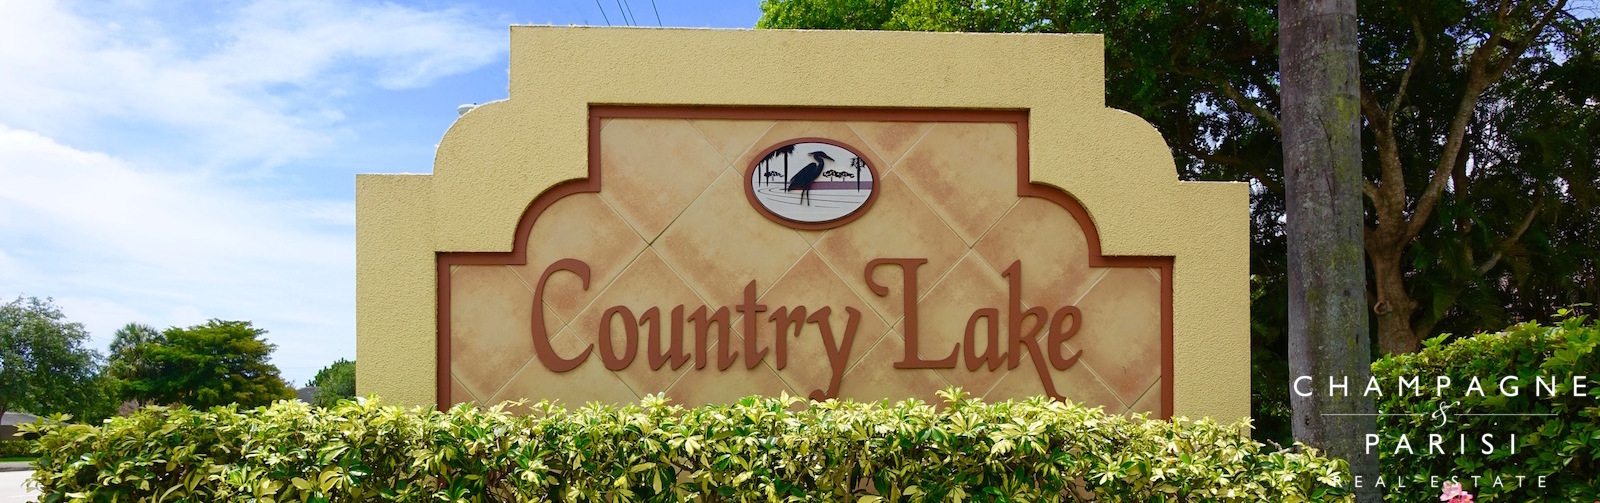 country lake townhomes | delray beach